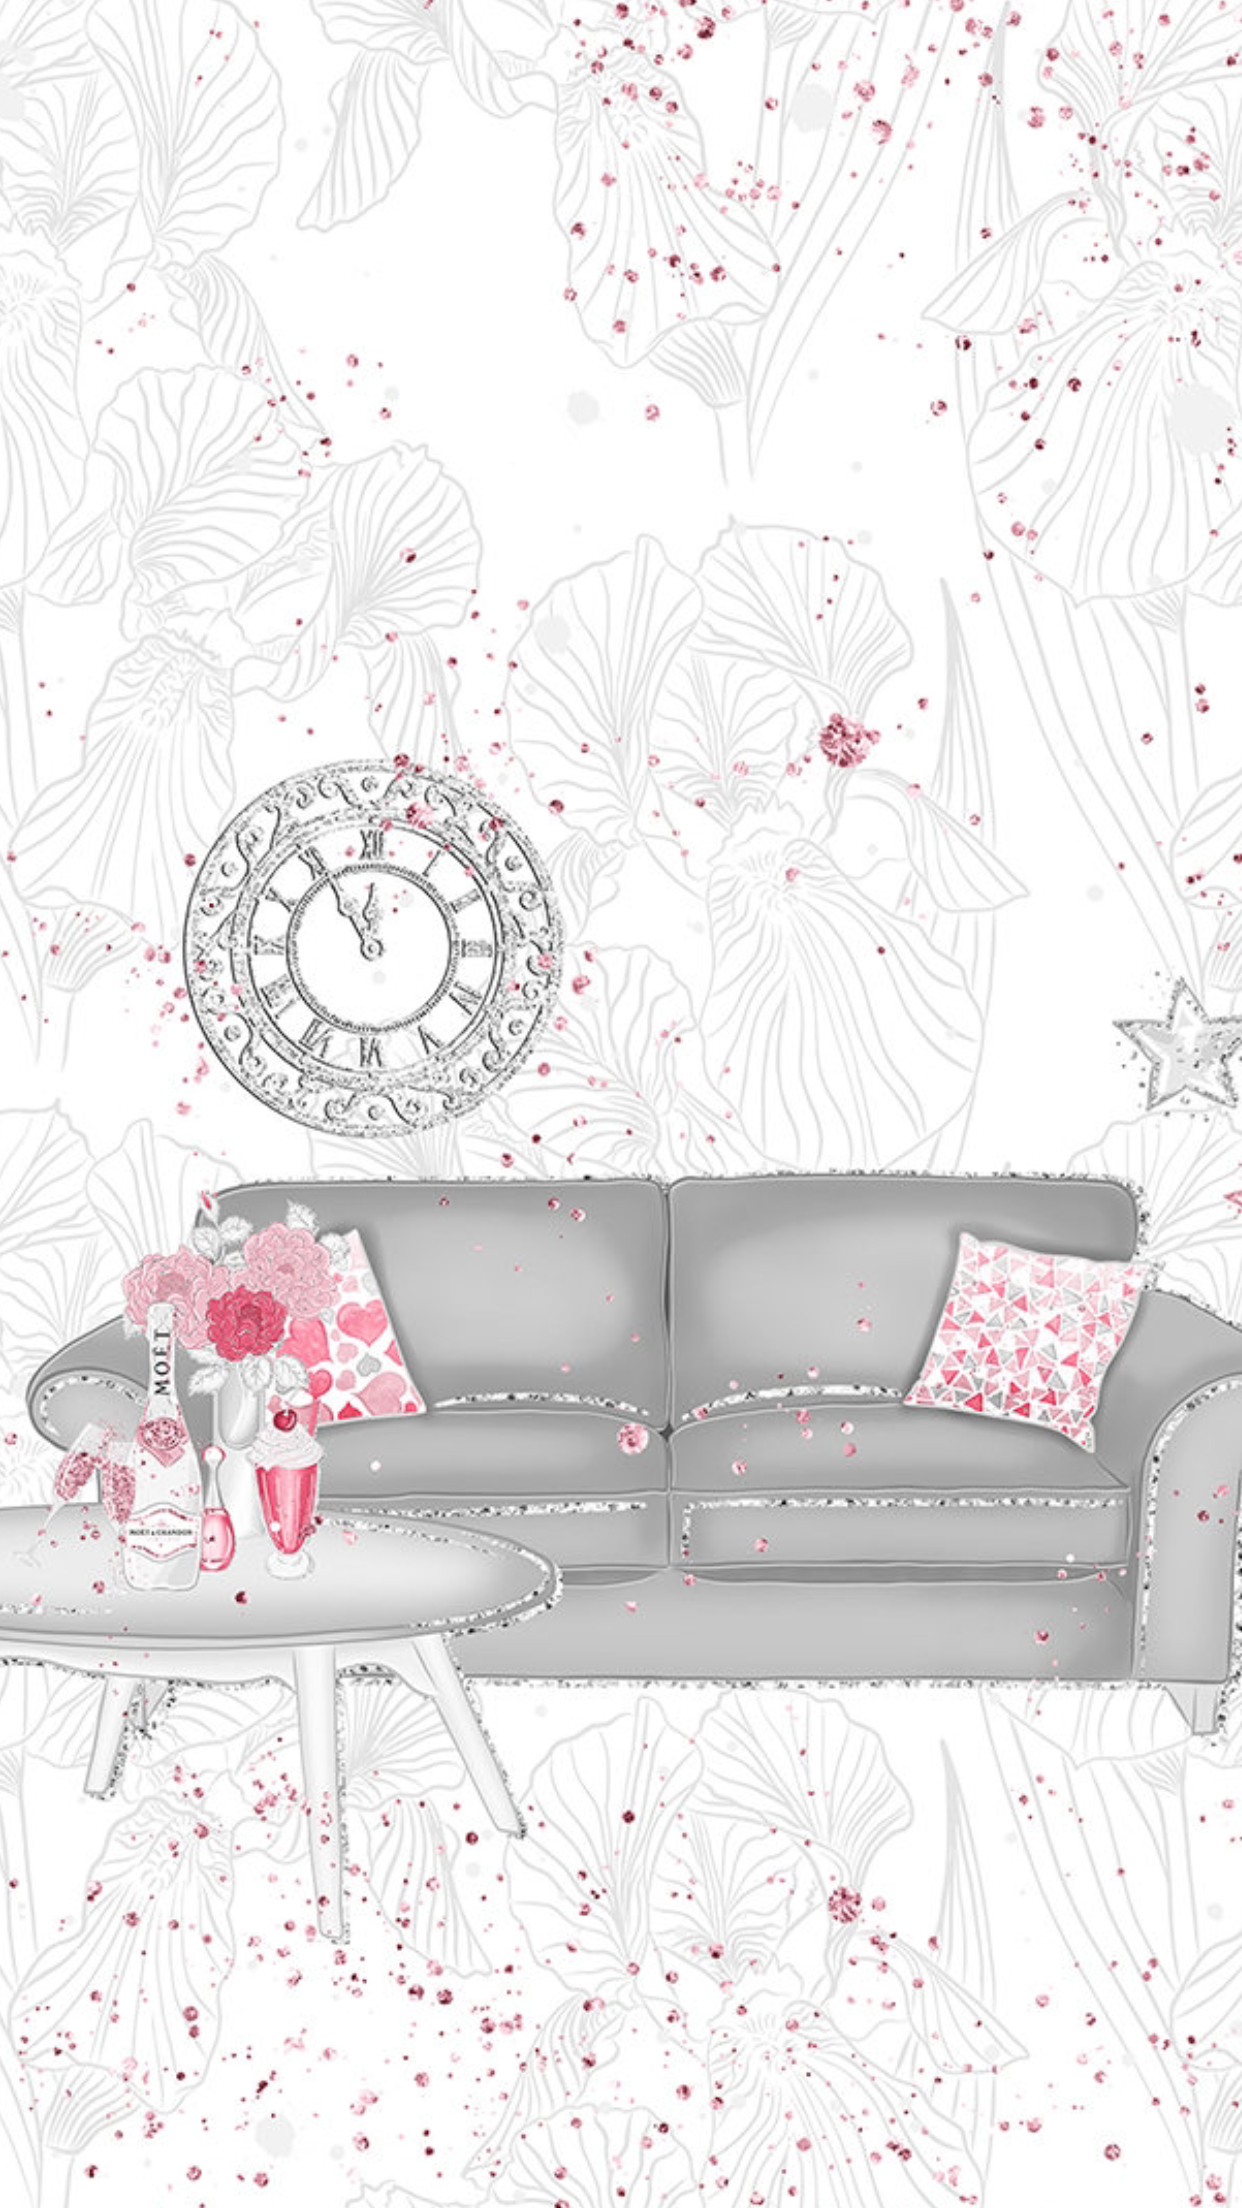 Girly Background Room Valentines Wallpaper Classy Wallpaper Holiday Wallpaper